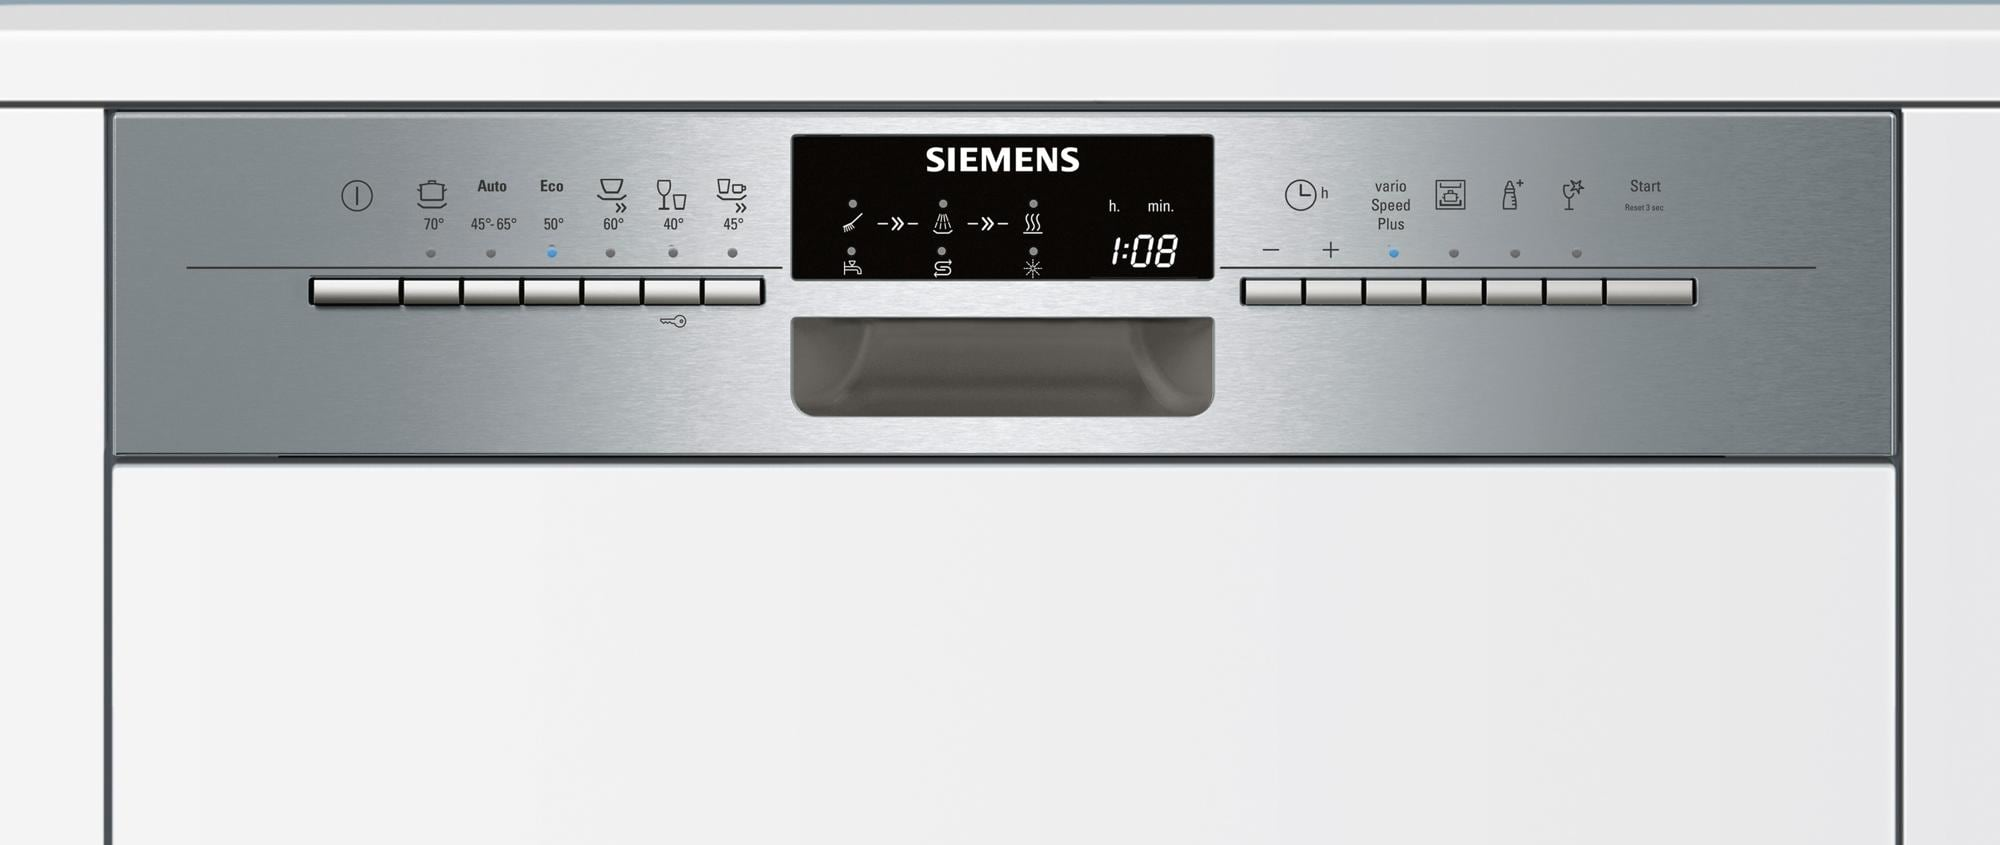 siemens sn56p598eu speedmatic a integrierbarer. Black Bedroom Furniture Sets. Home Design Ideas